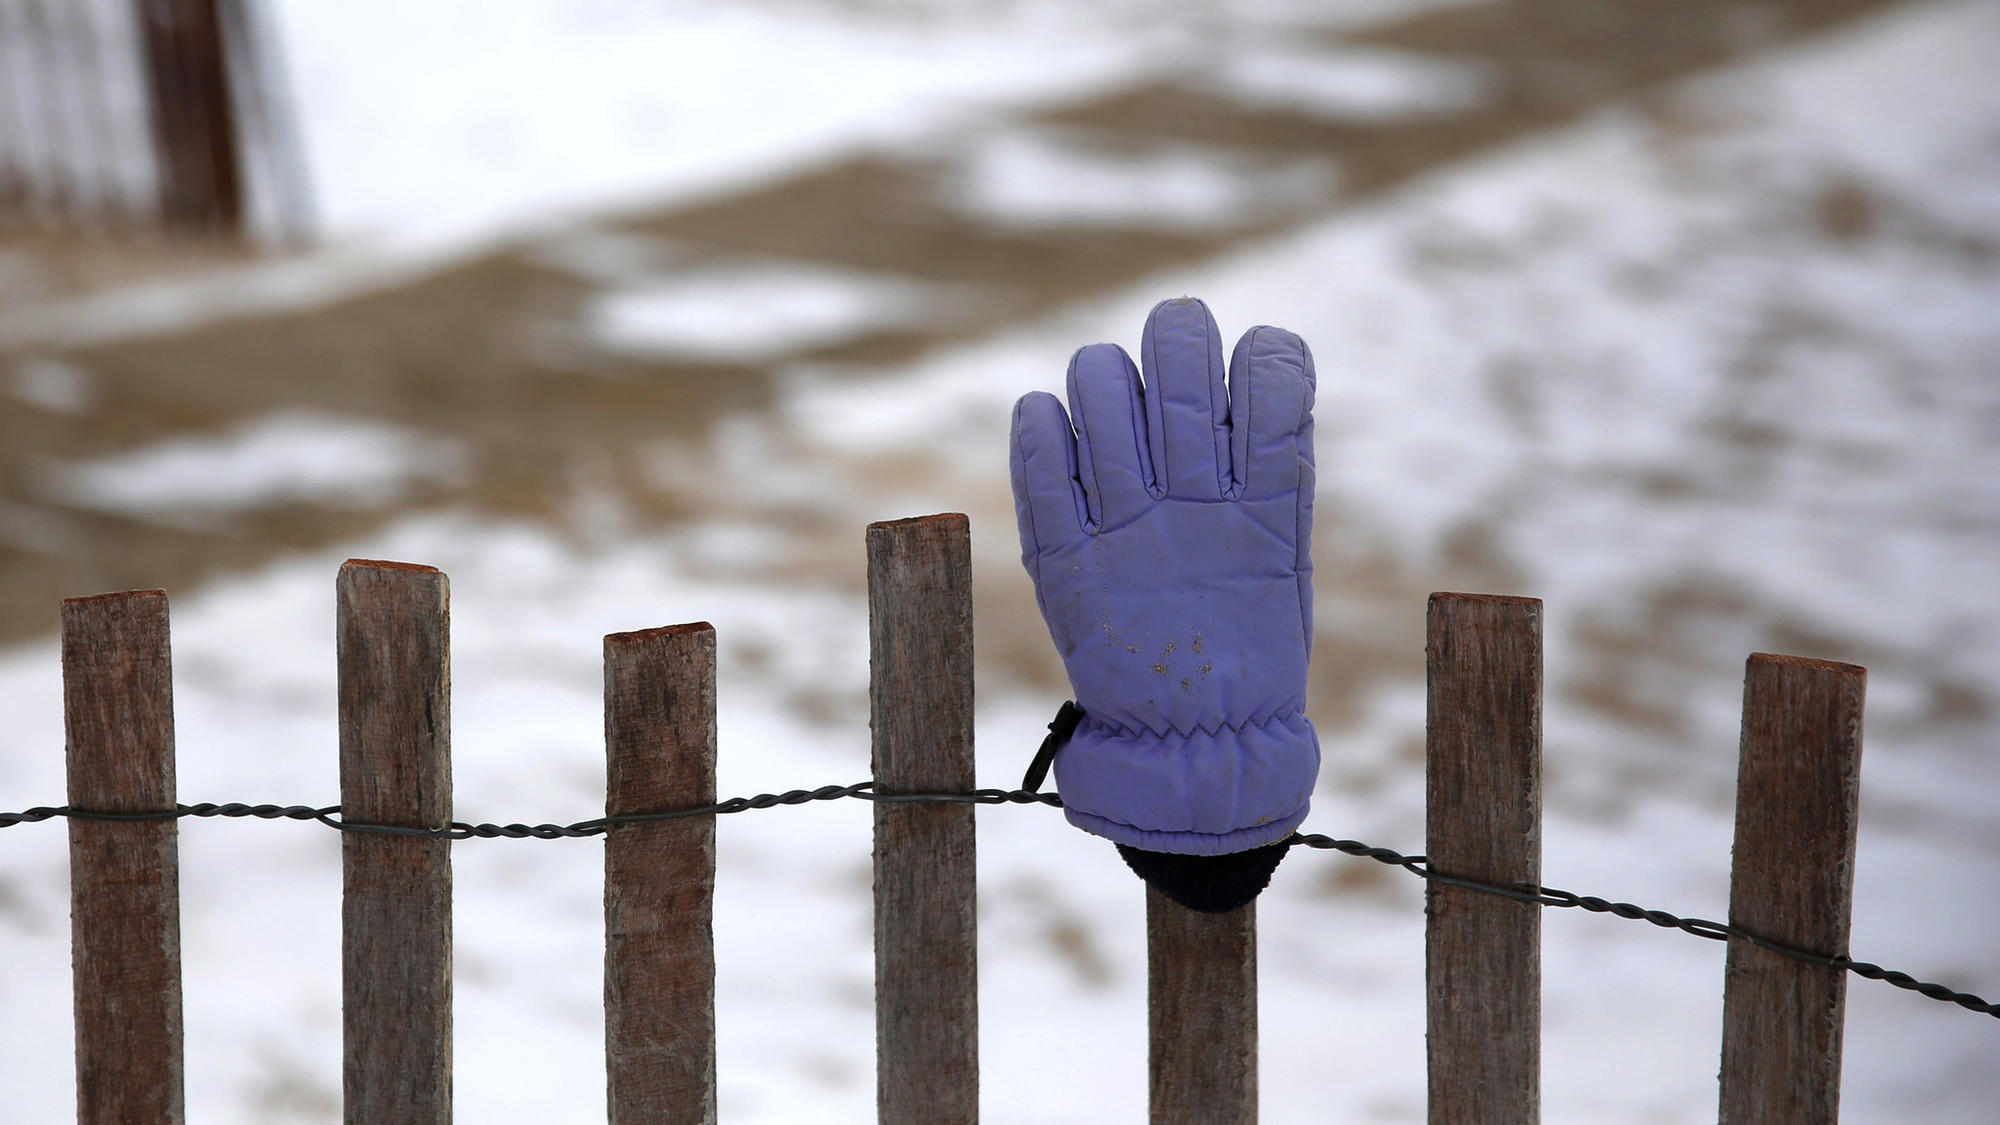 Oh, the woe of a lost winter glove! - Chicago Tribune